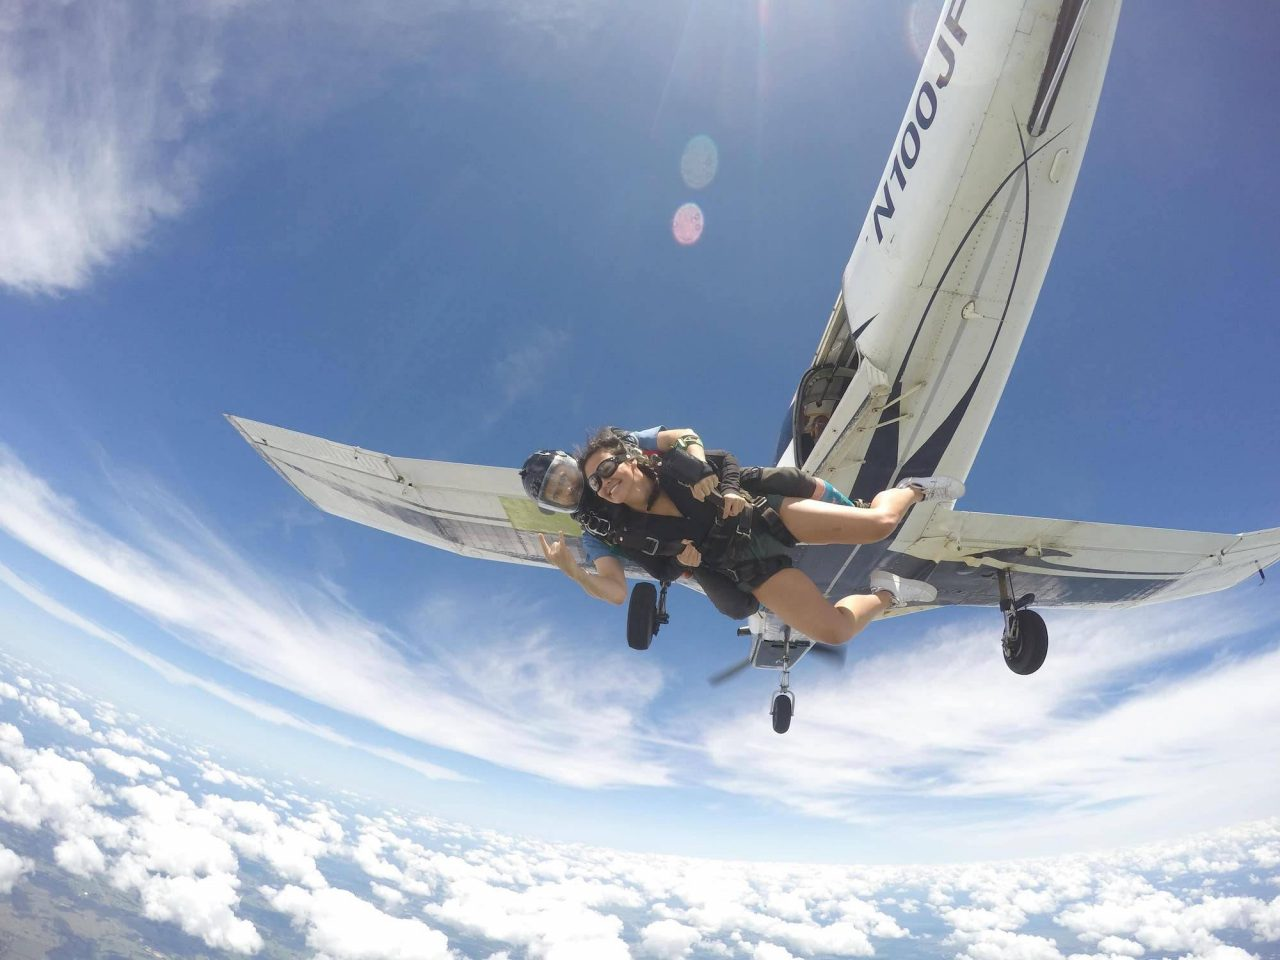 female wearing a black jacket and skydiving googles takes the leap from a the skydiving company airplane into free fall